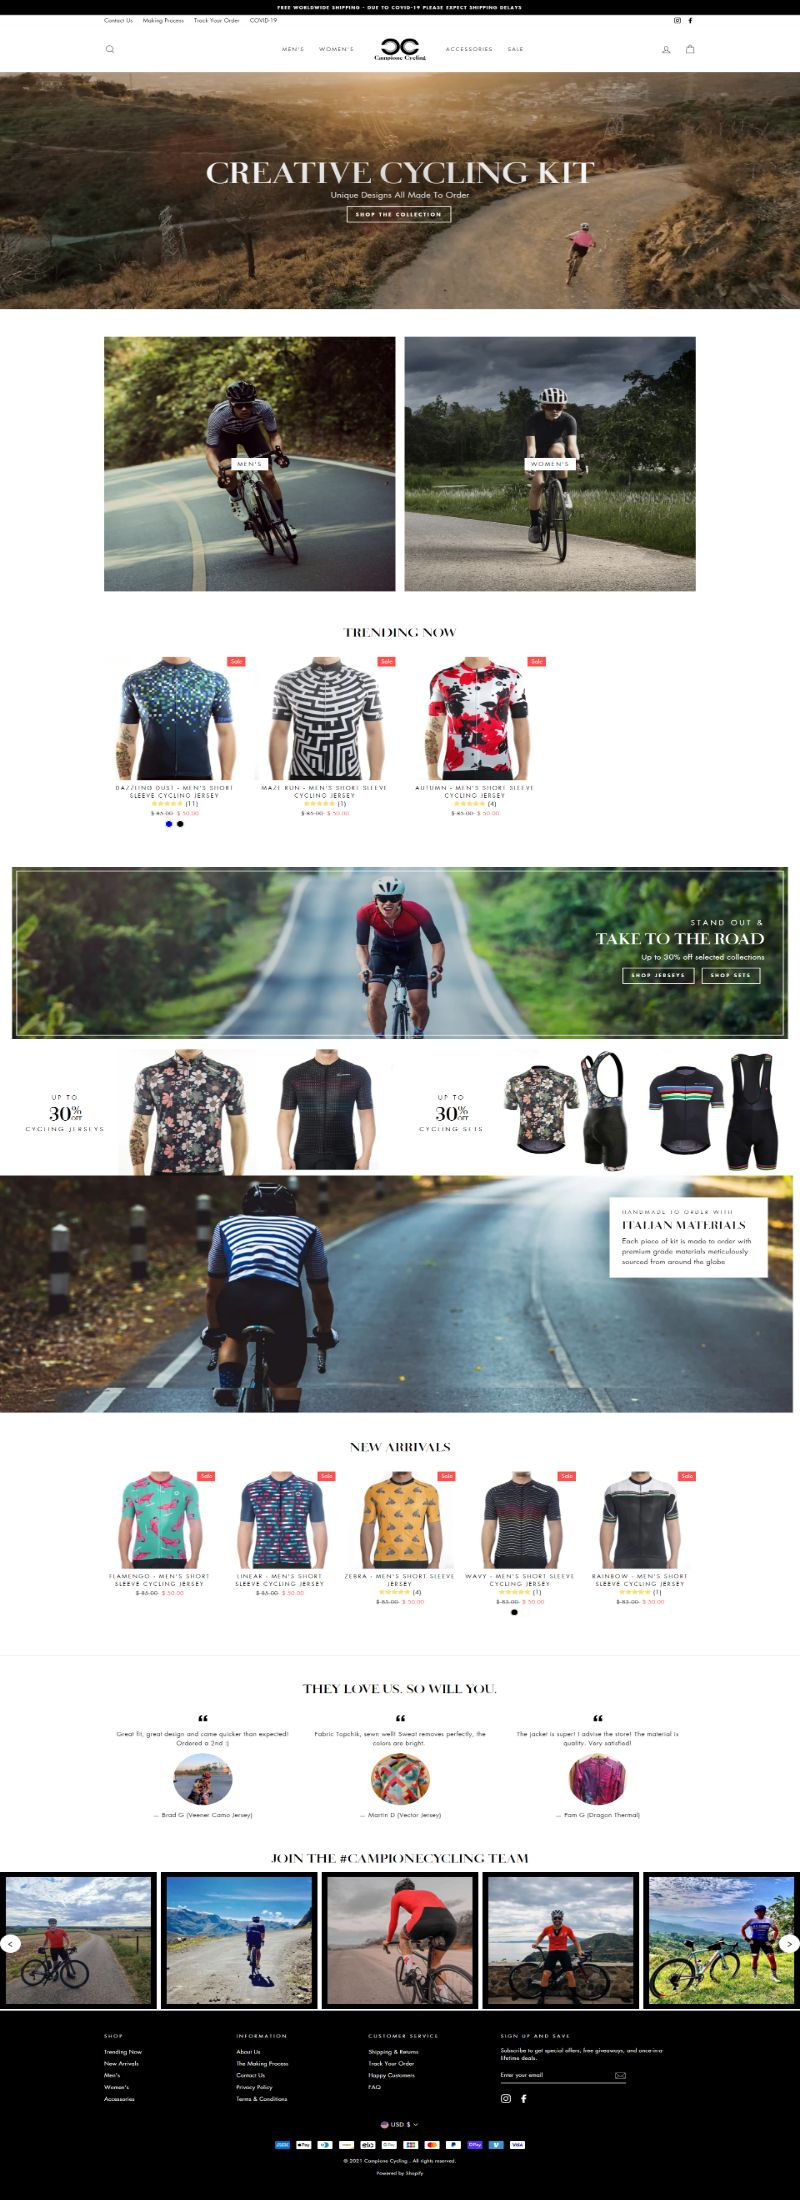 campionecycling.com